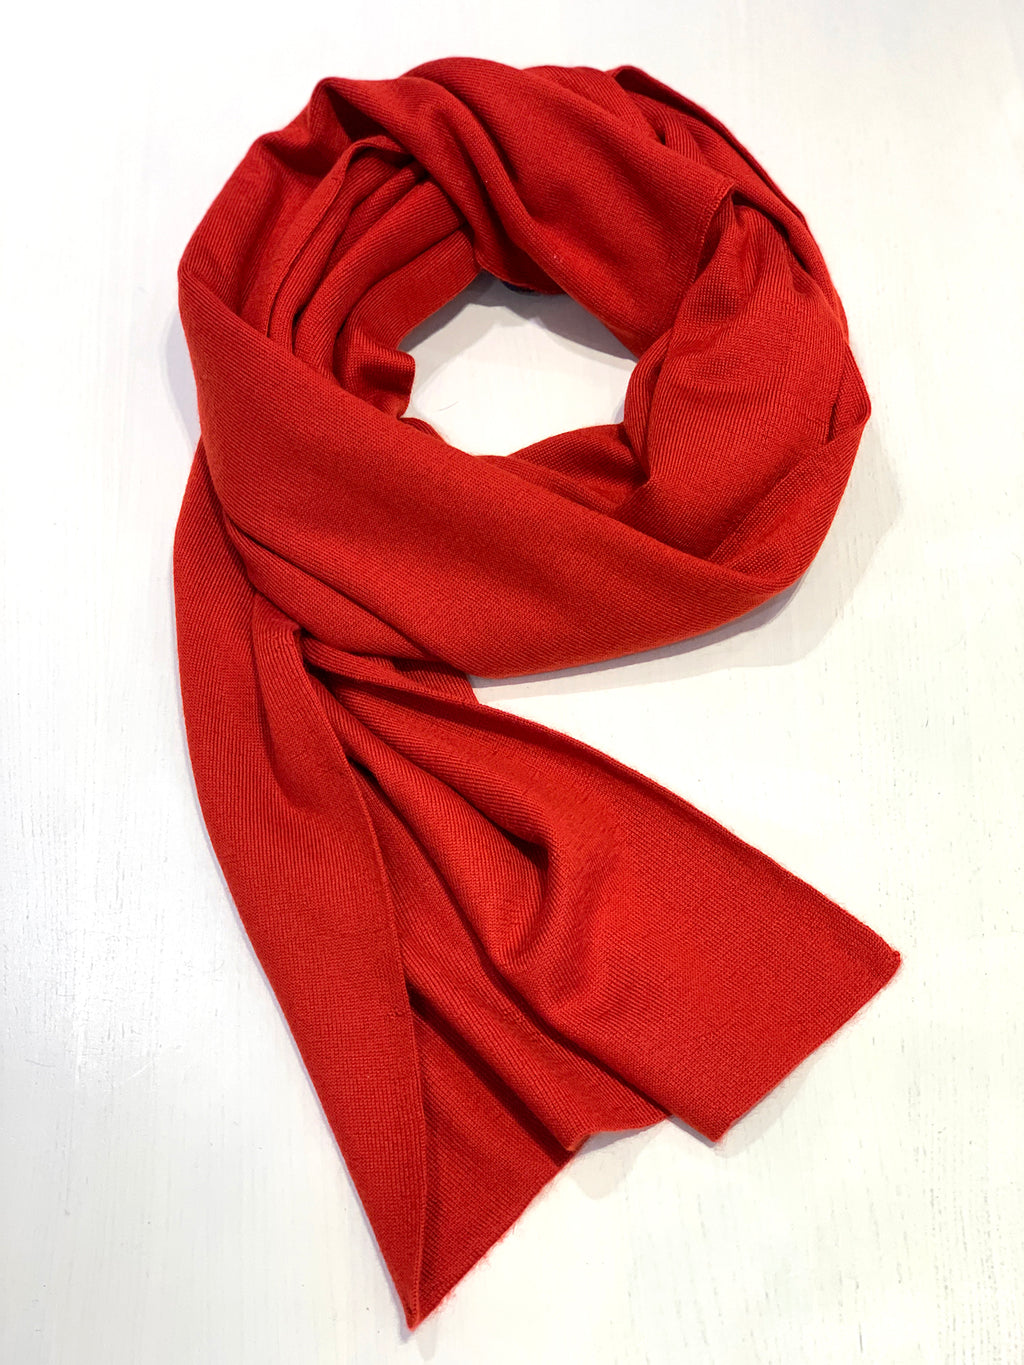 100% Cashmere Scarf - Festive Red